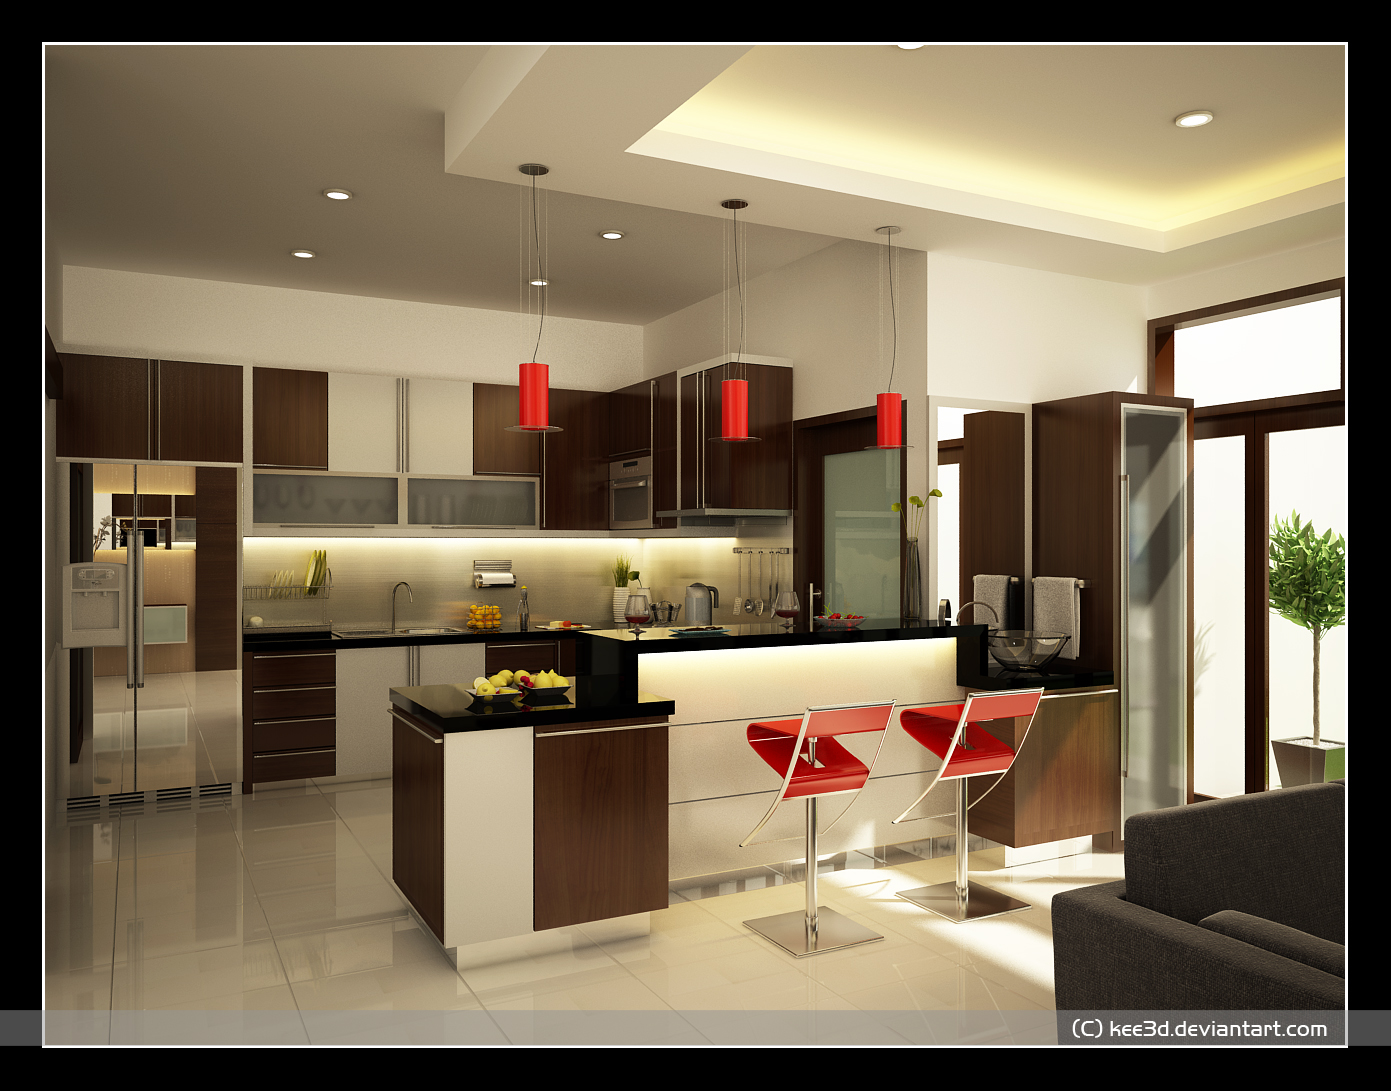 kitchen design ideas On kitchen planning ideas